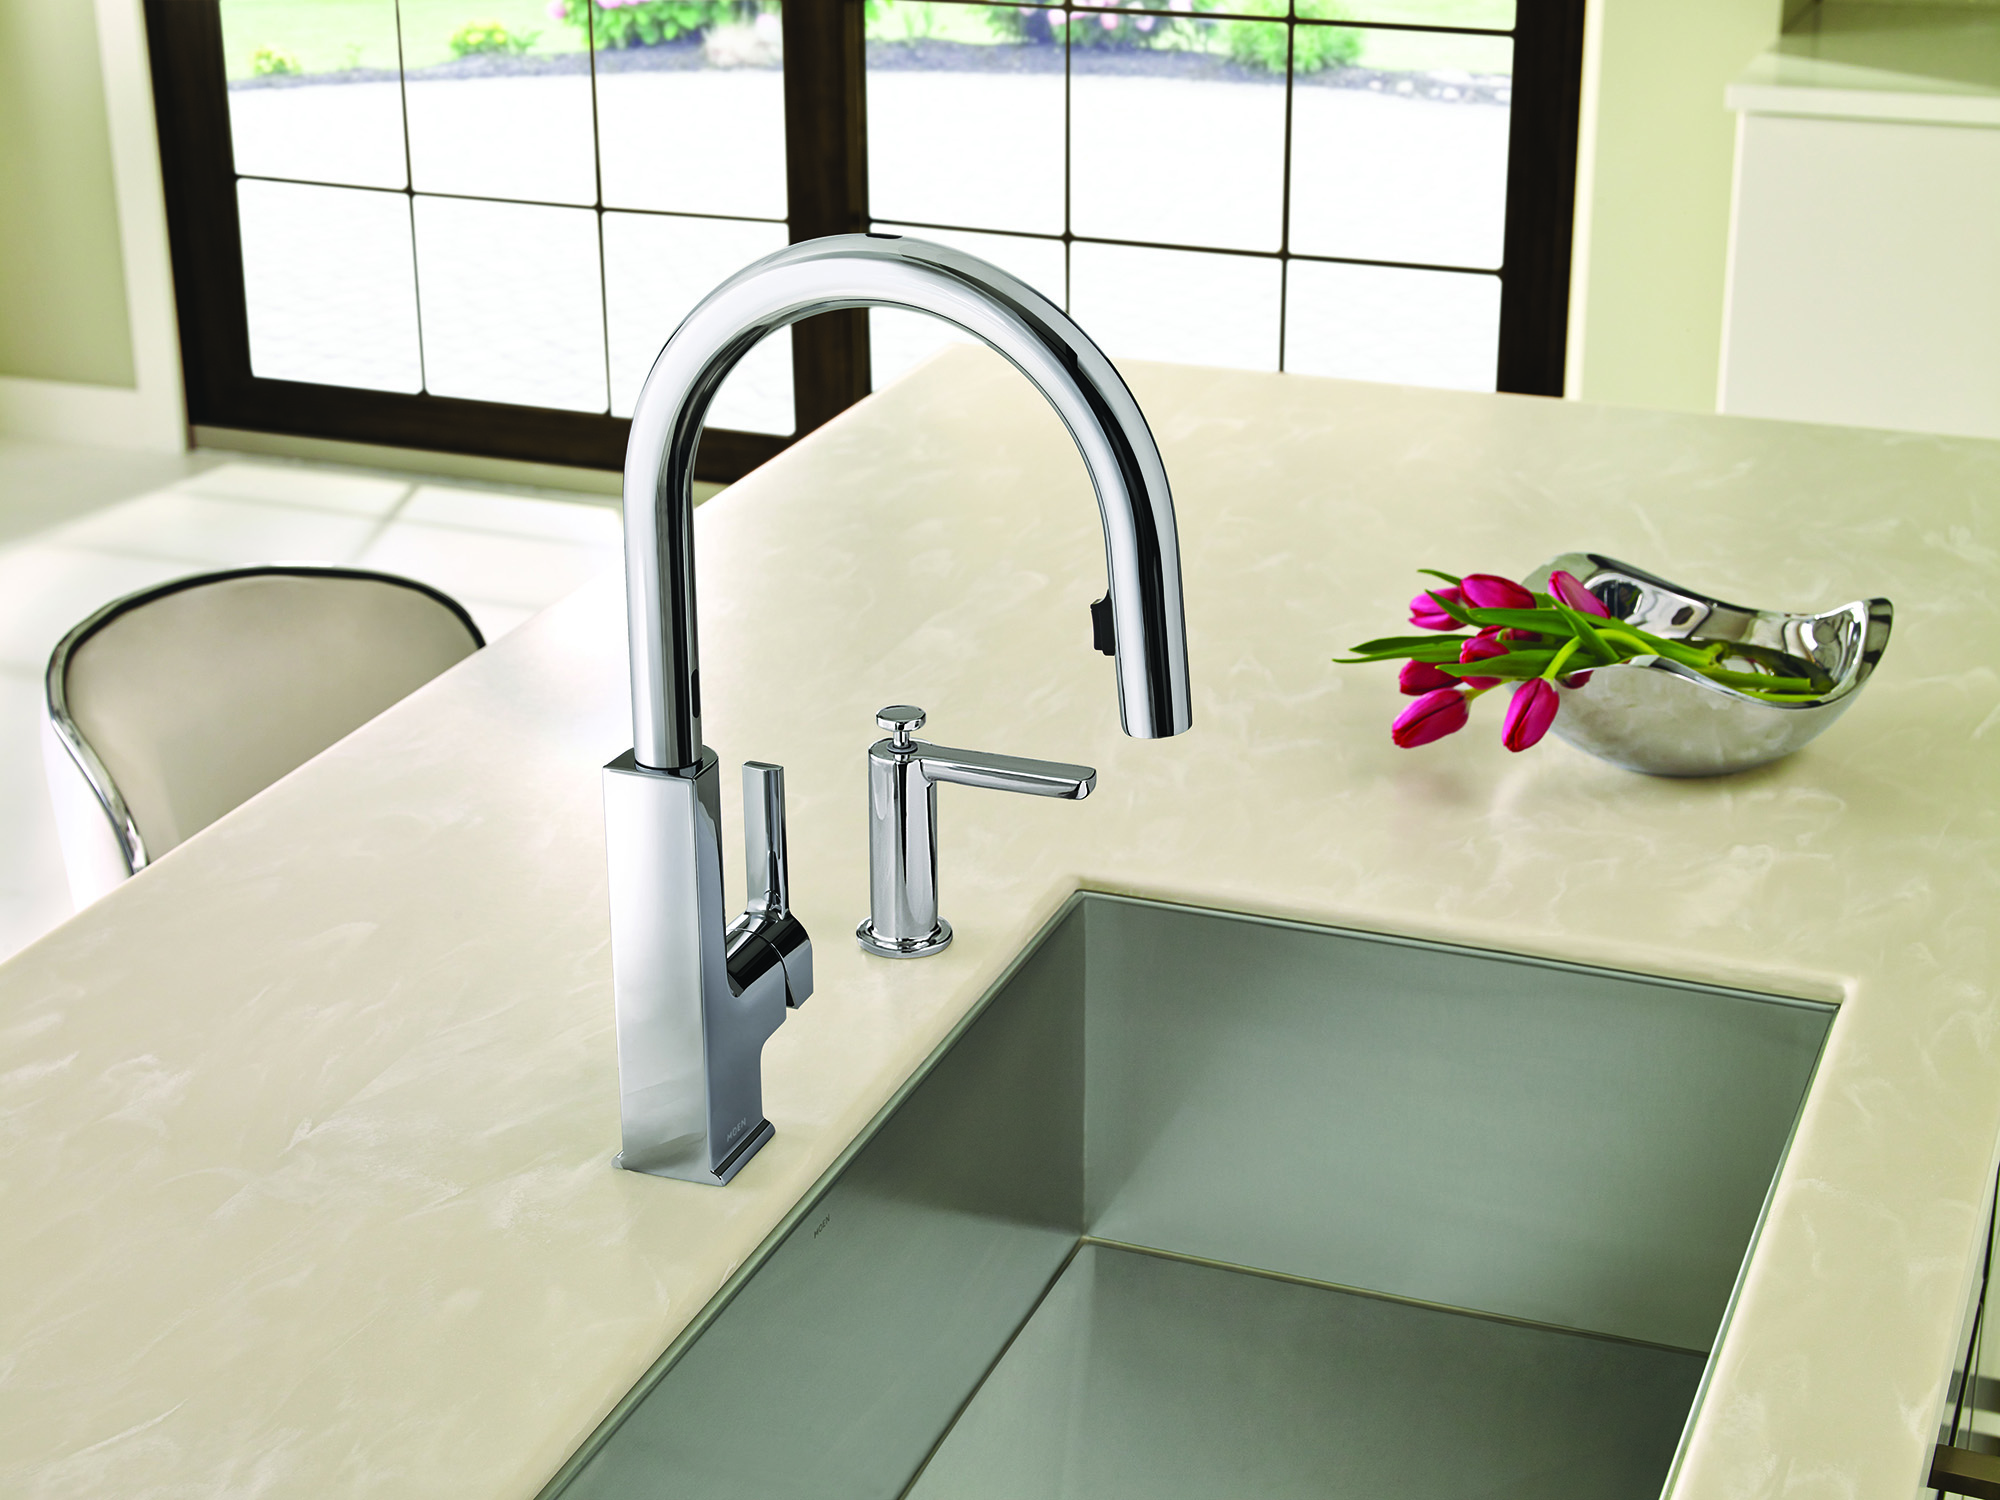 Why Touch Your Kitchen Faucet When You Don T Have To Moen Expands Popular Hands Free Motionsense Technology Kbis